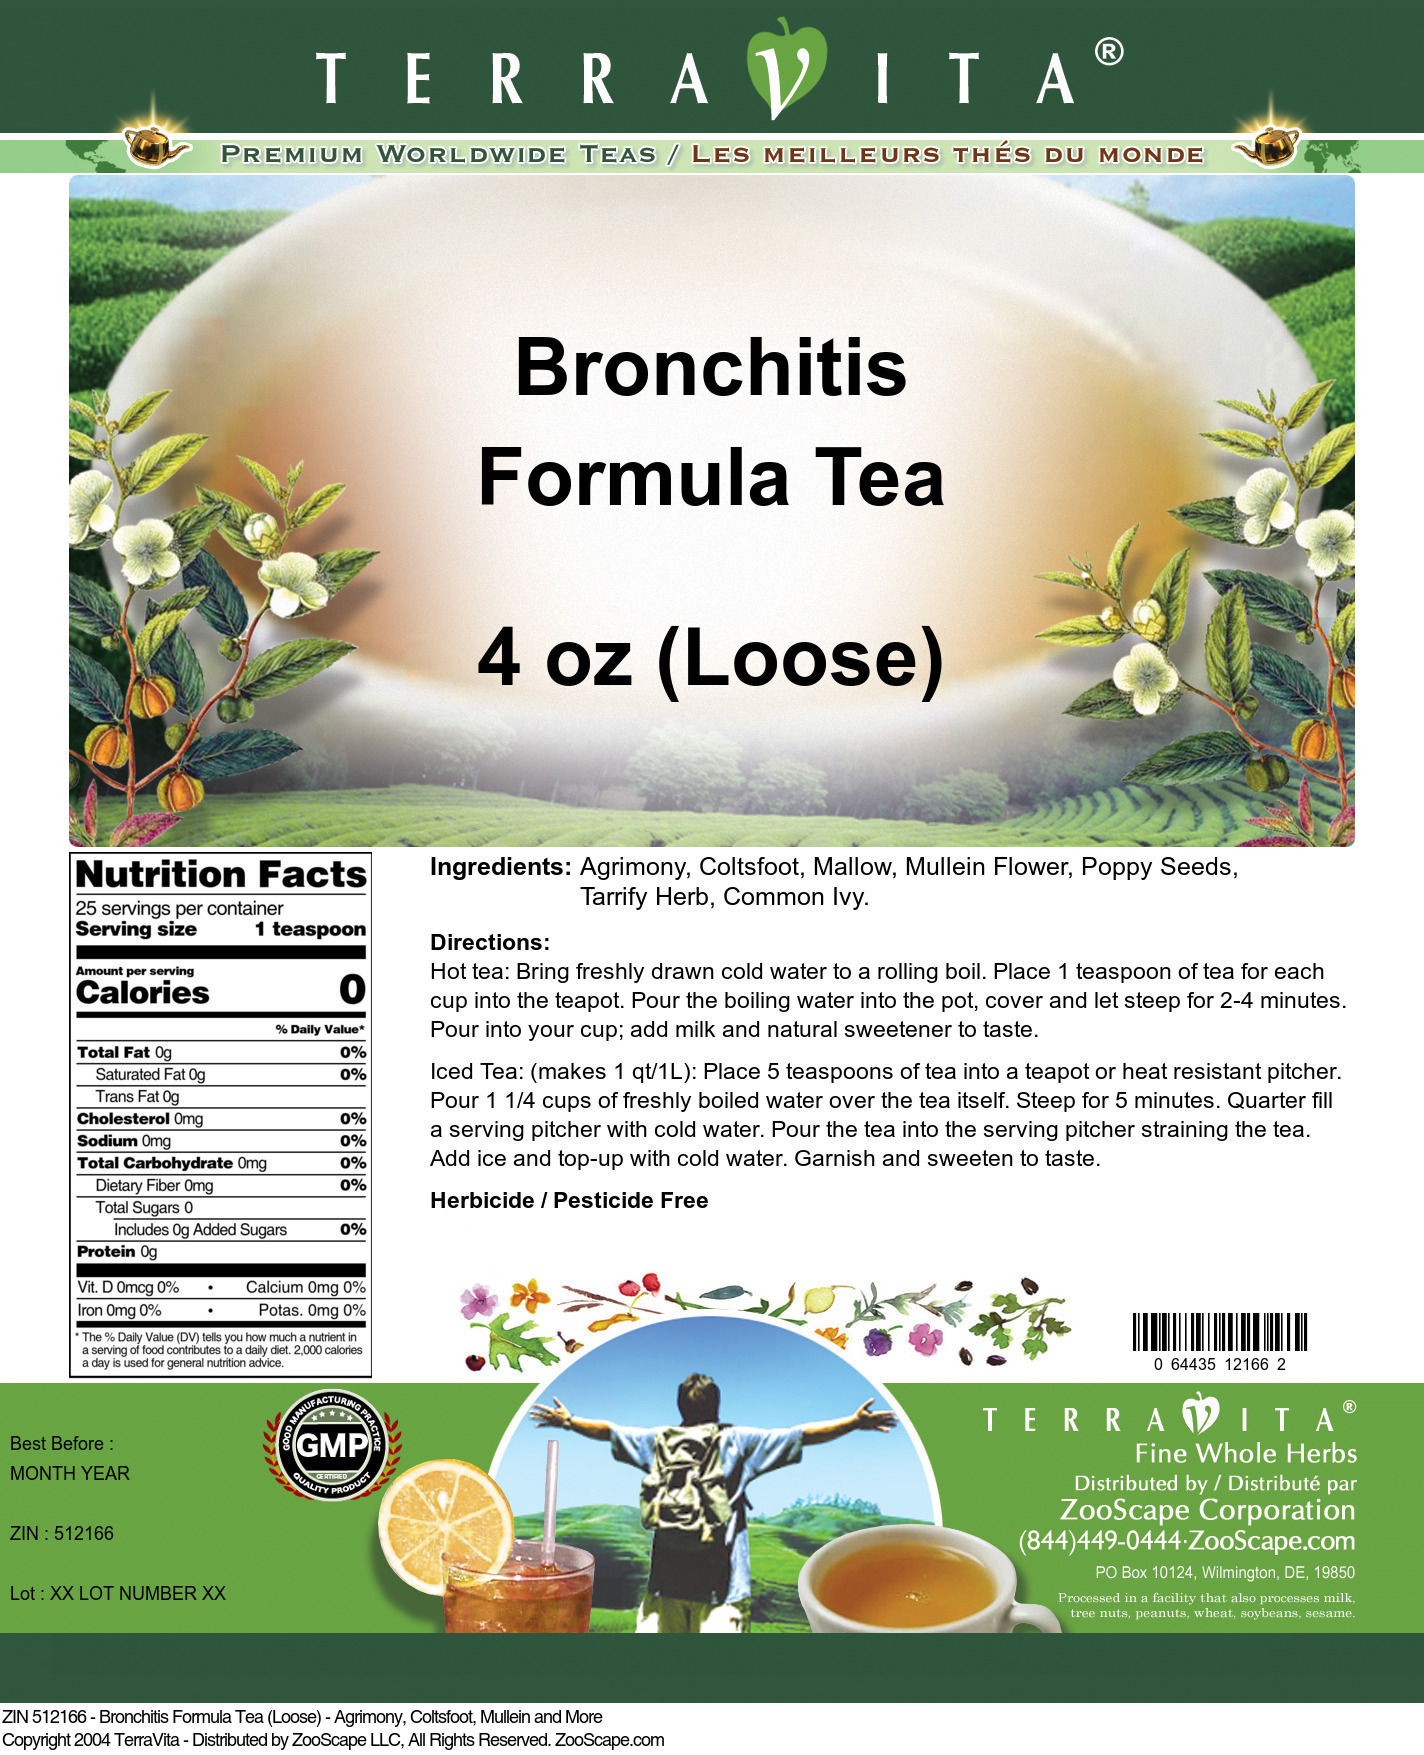 Bronchitis Formula Tea (Loose) - Agrimony, Coltsfoot, Mullein and More